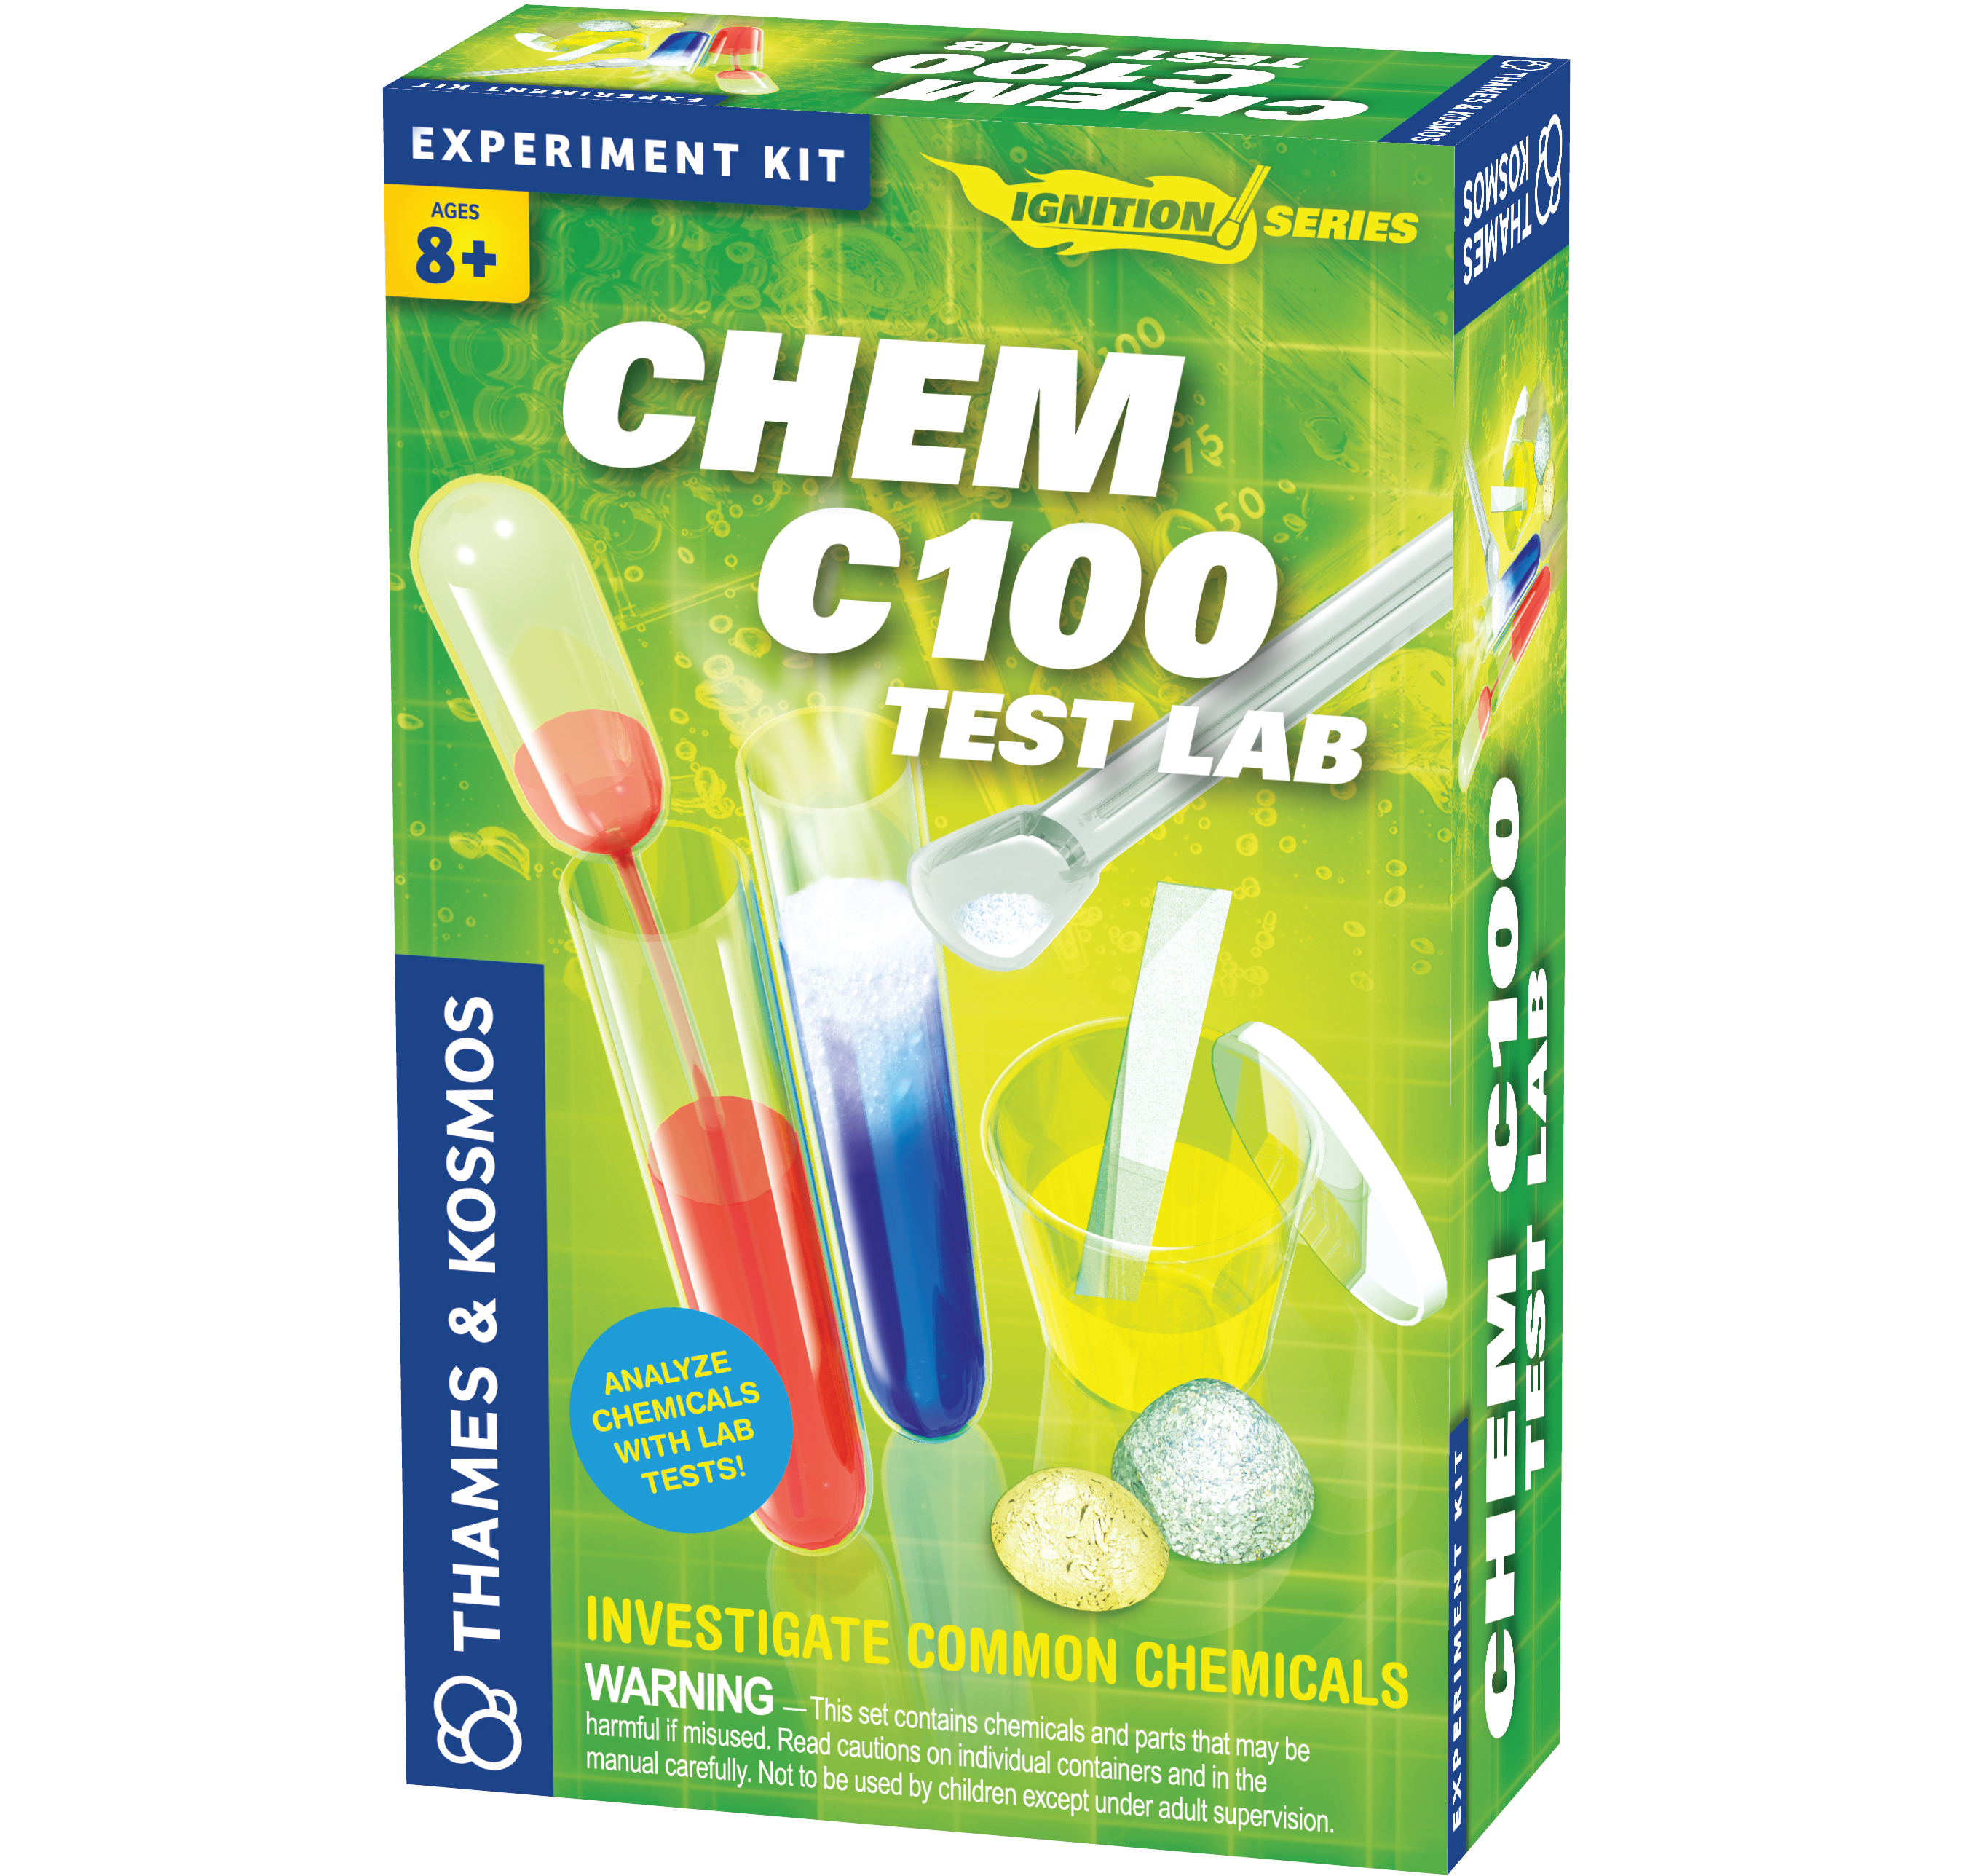 Chem C100 Test Lab